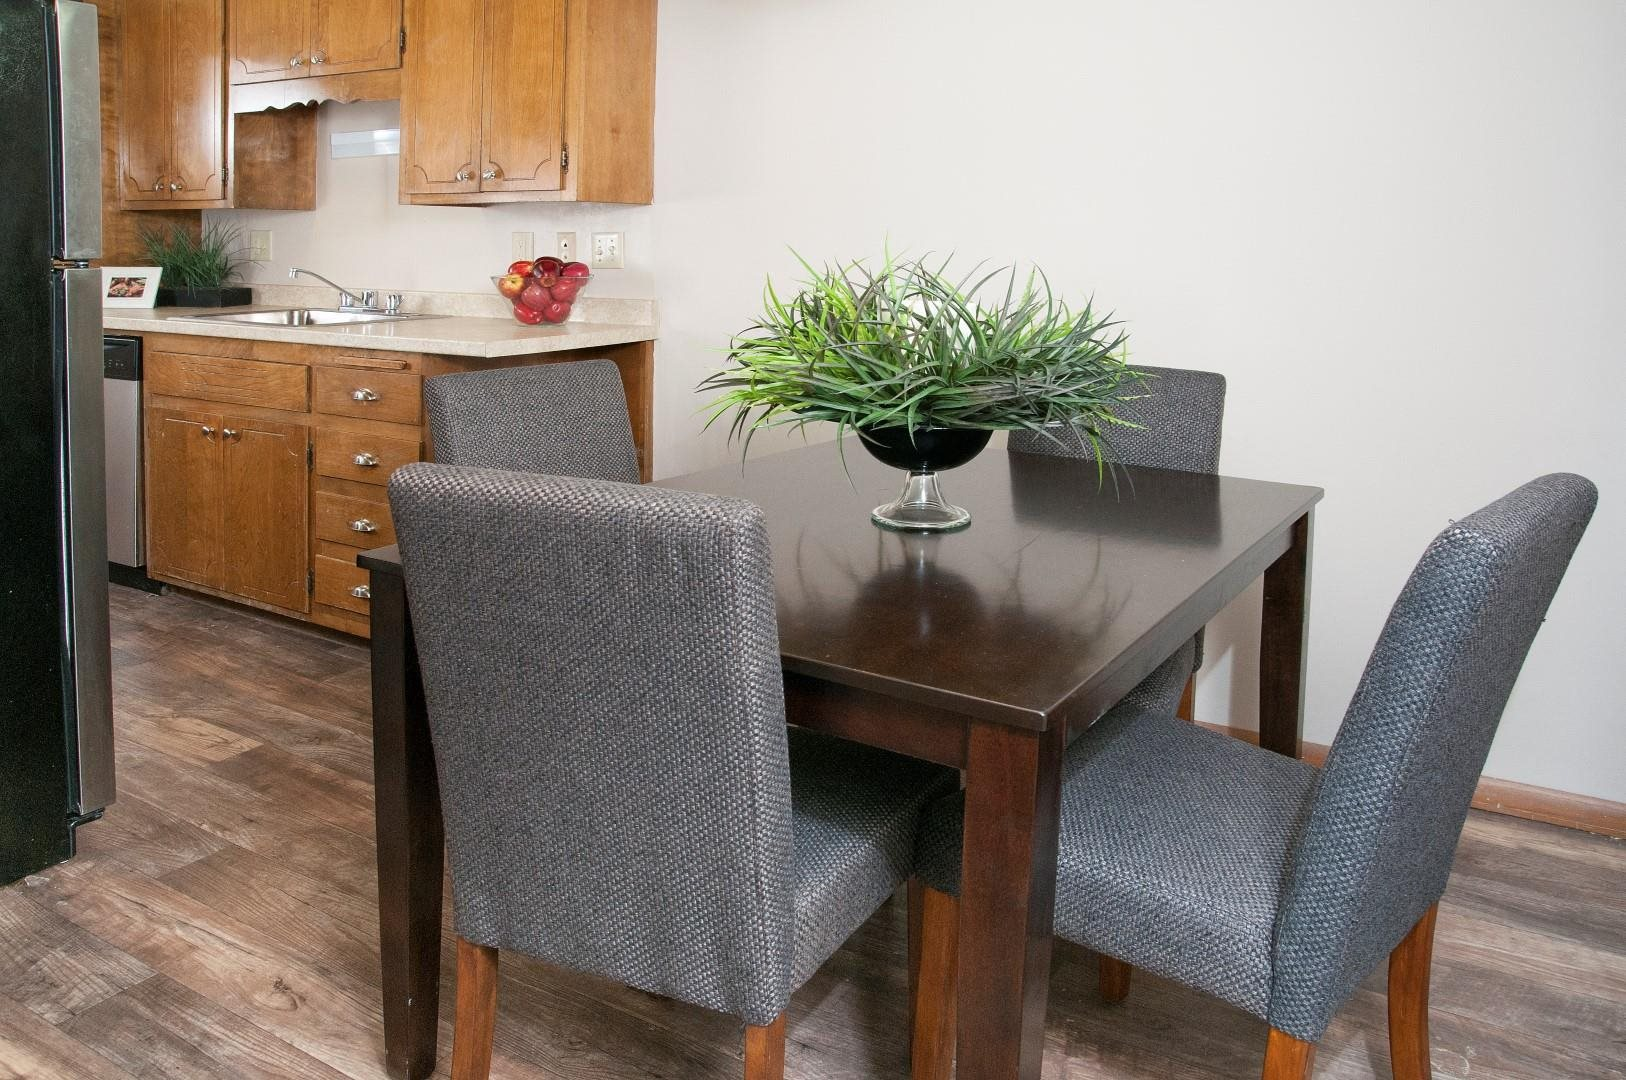 Dining Room Connected to Kitchen With Hard Wood Floors in St. Louis Park Apartment